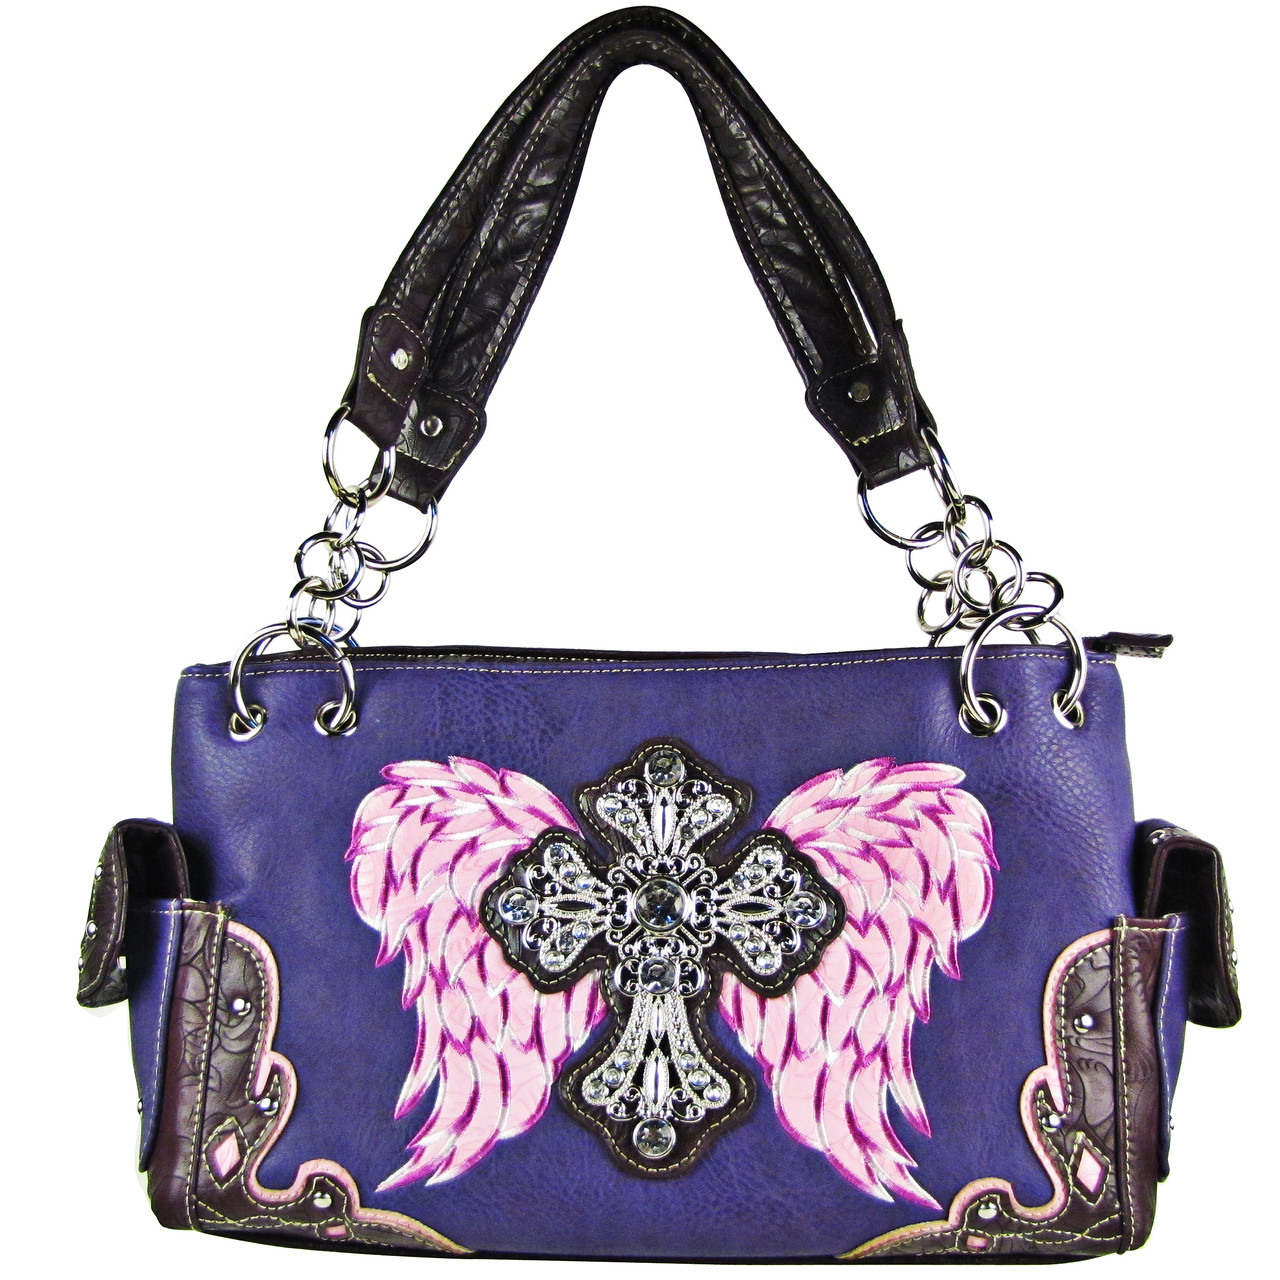 PURPLE RHINESTONE CROSS WITH WINGS LOOK SHOULDER HANDBAG HB1-61LCRPPL